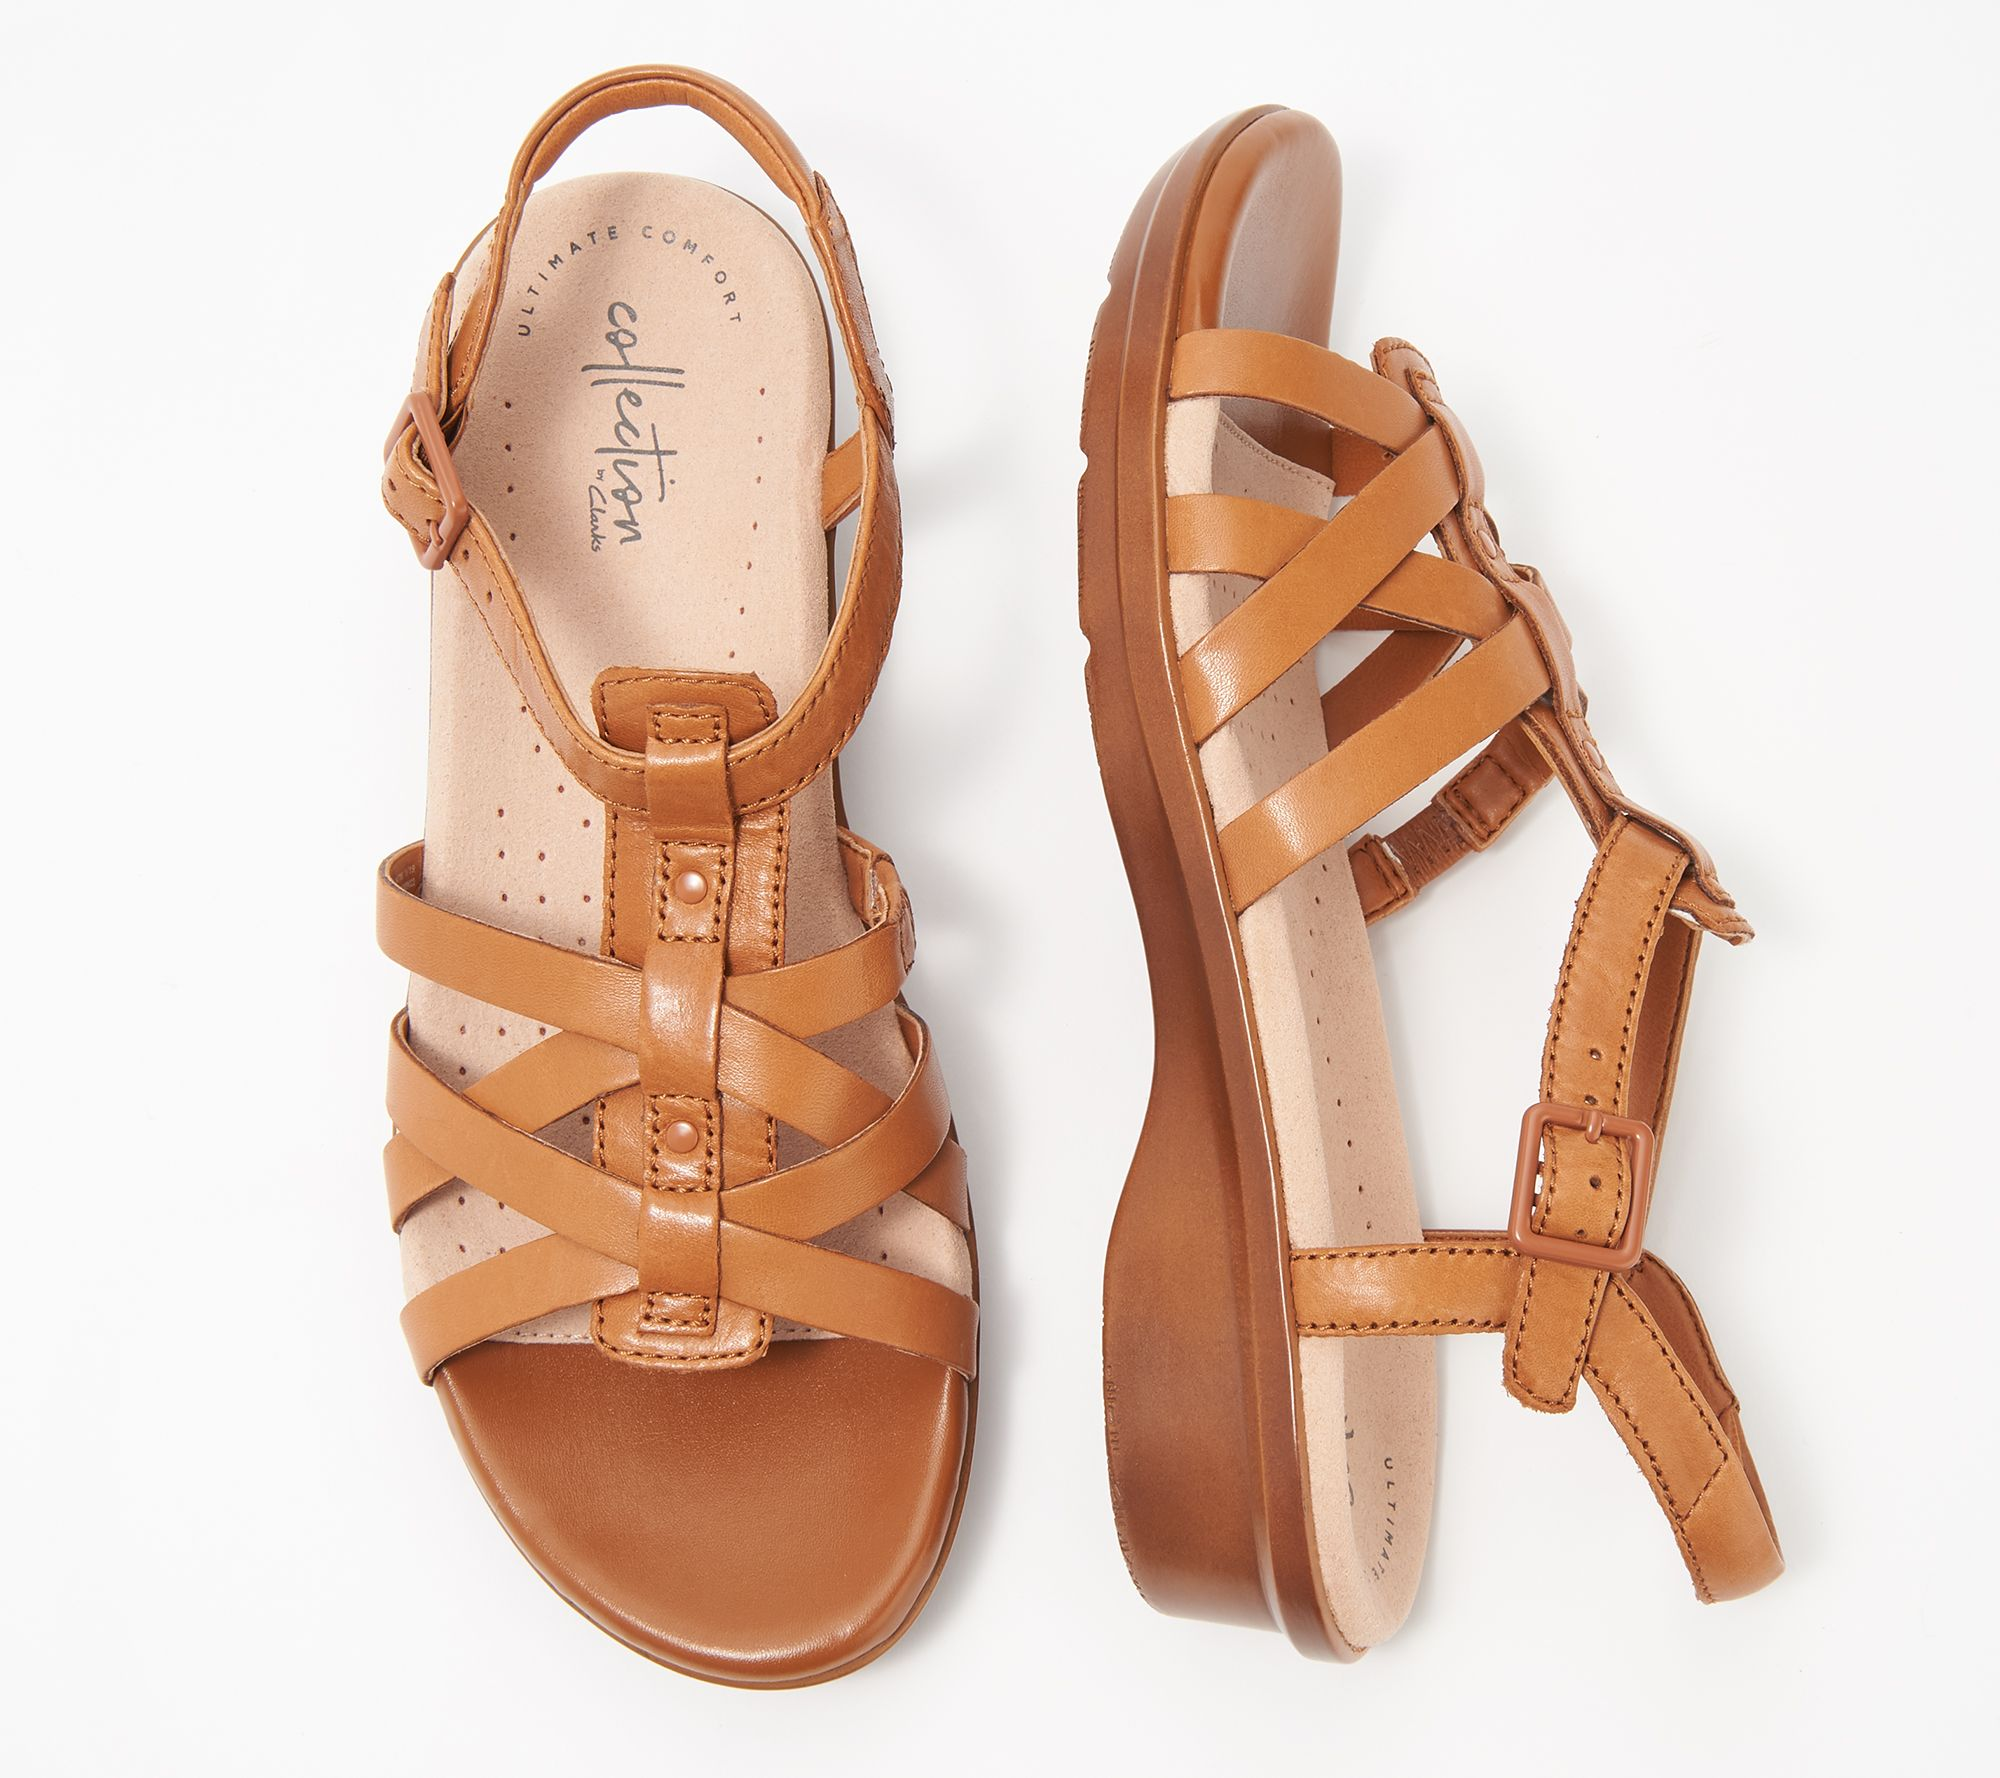 bee81d5a50b Clarks Collection Leather Sandals - Loomis Katey - Page 1 — QVC.com